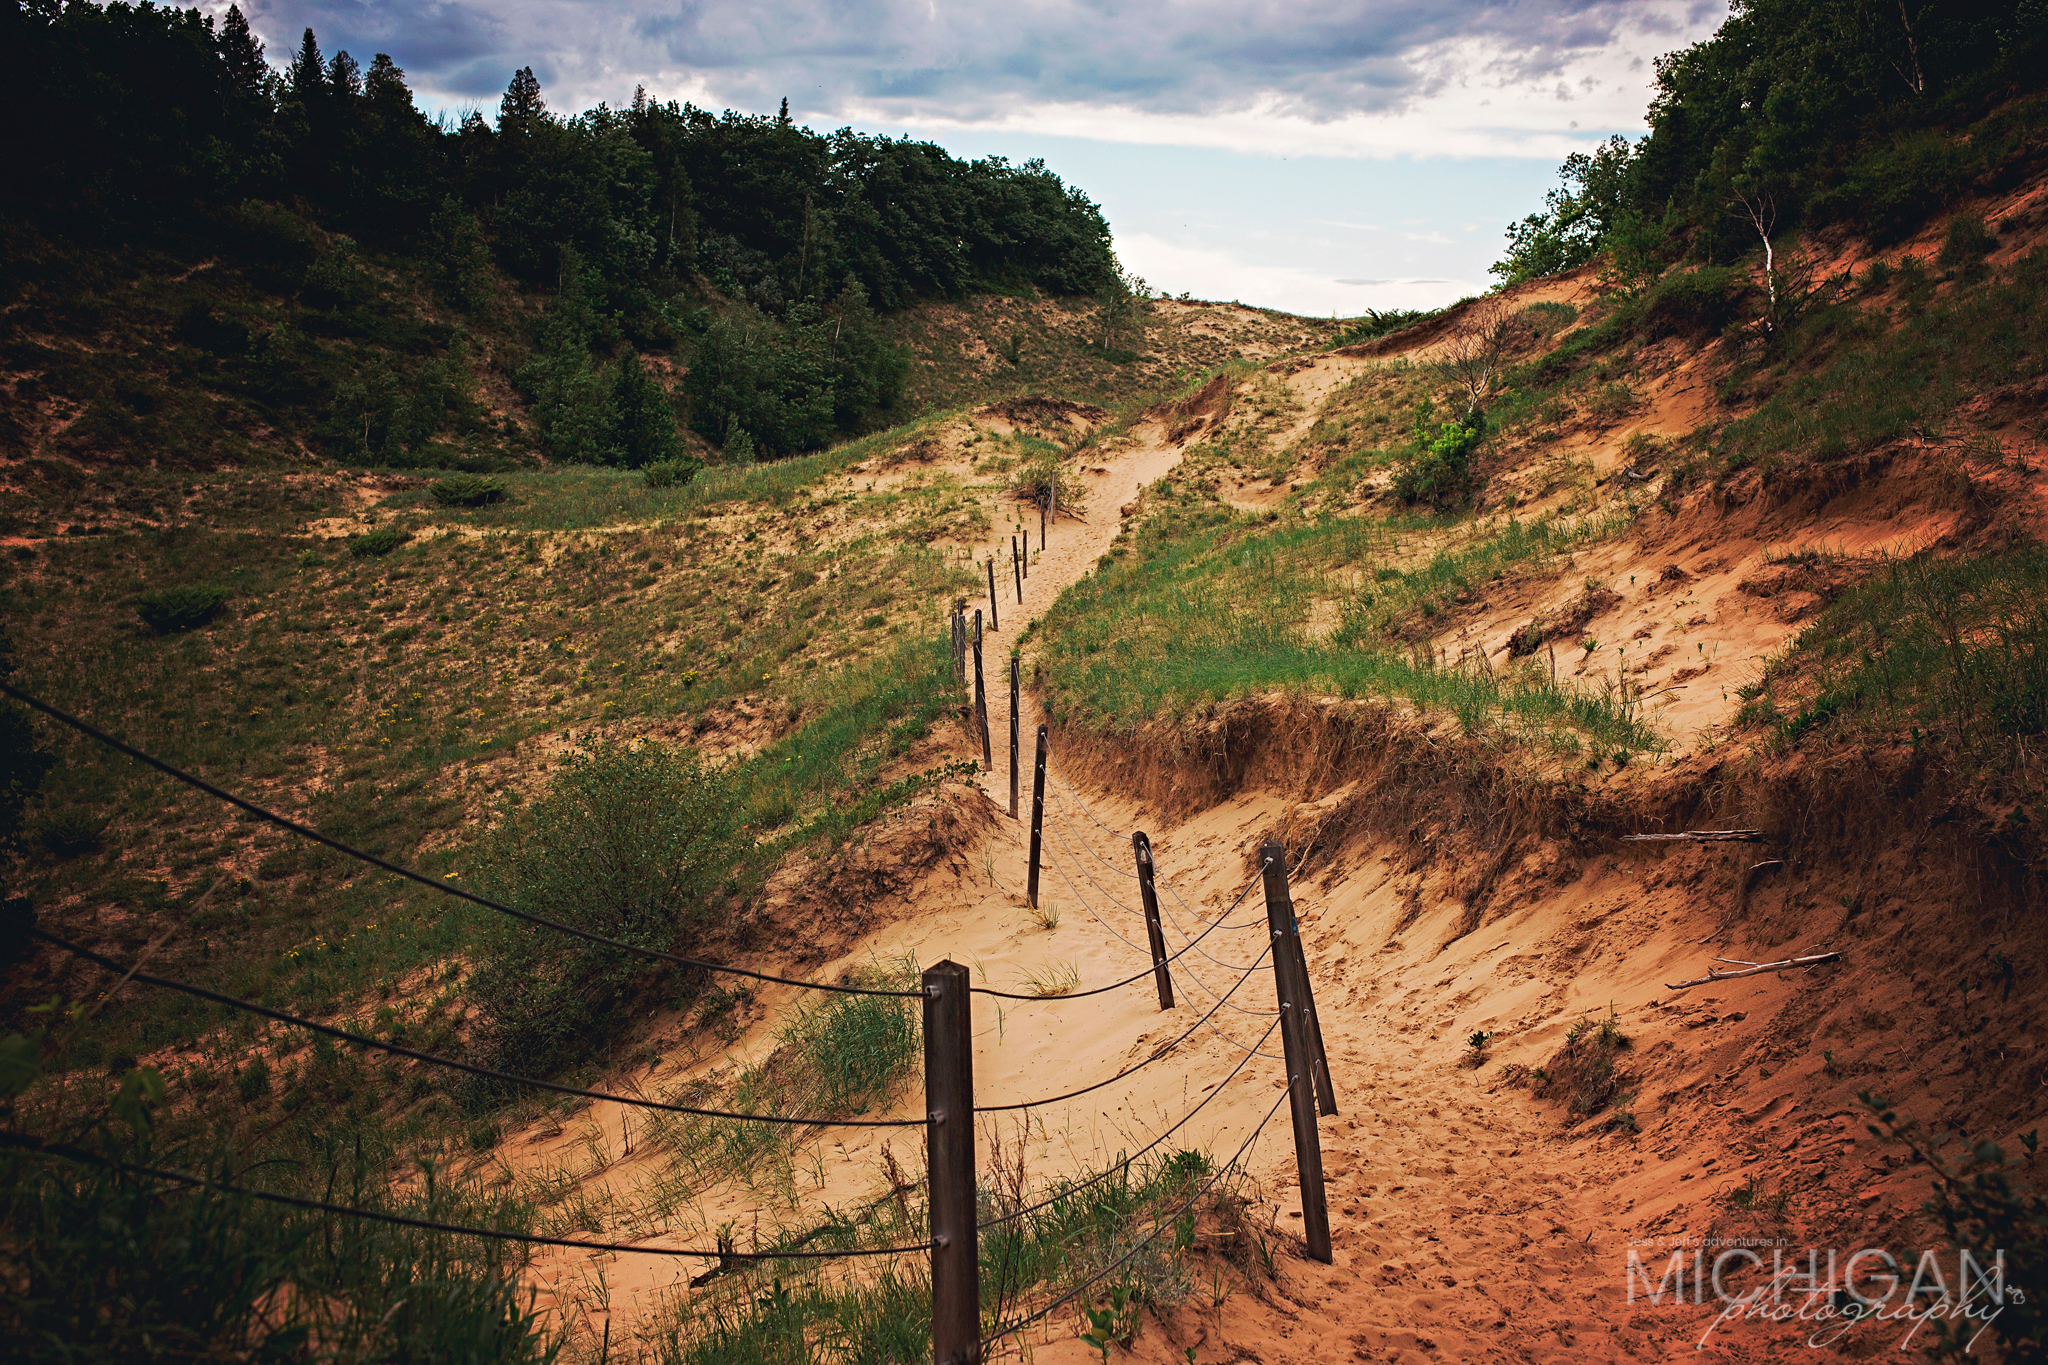 The beginning of Old Baldy Dune's trail.